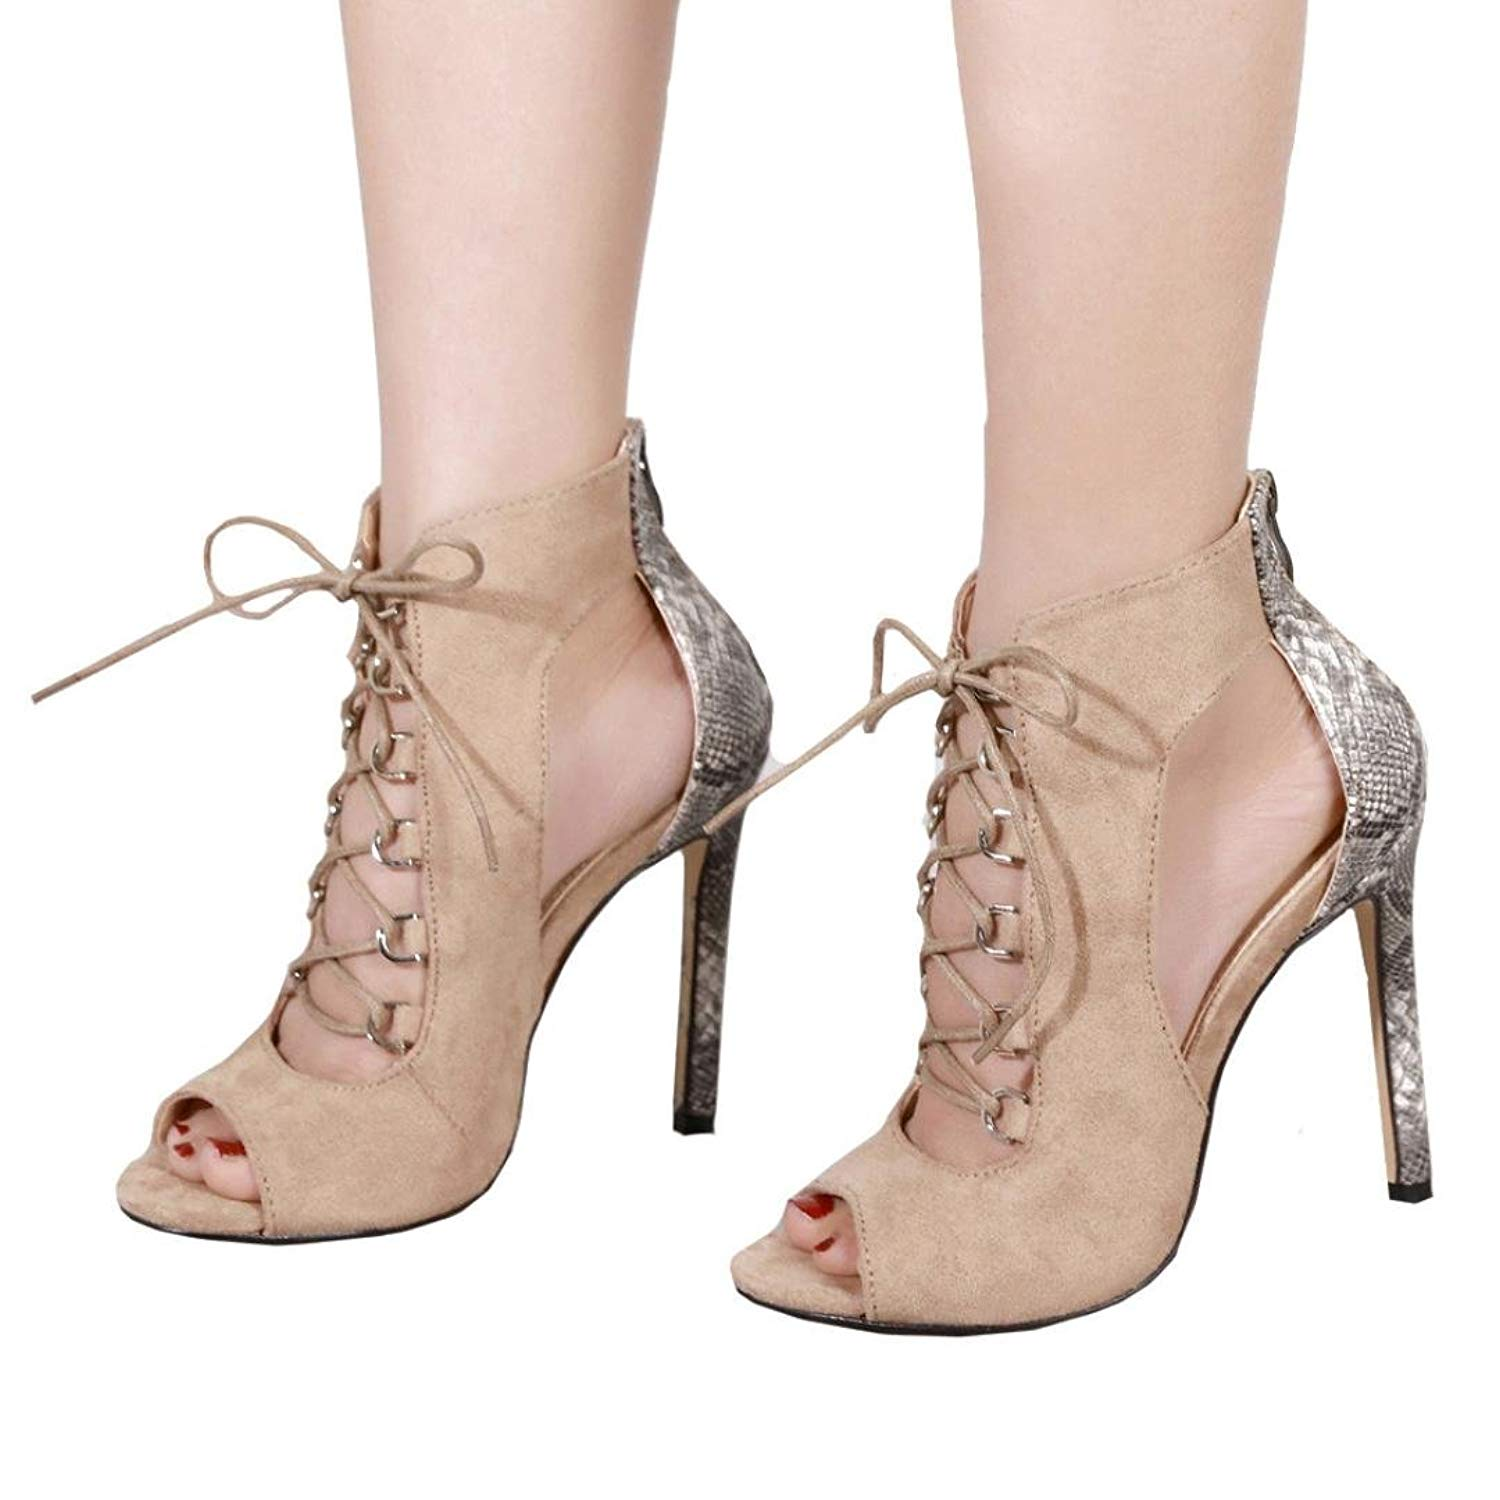 c728e774a7 Cheap Heel Boots For Girls, find Heel Boots For Girls deals on line ...